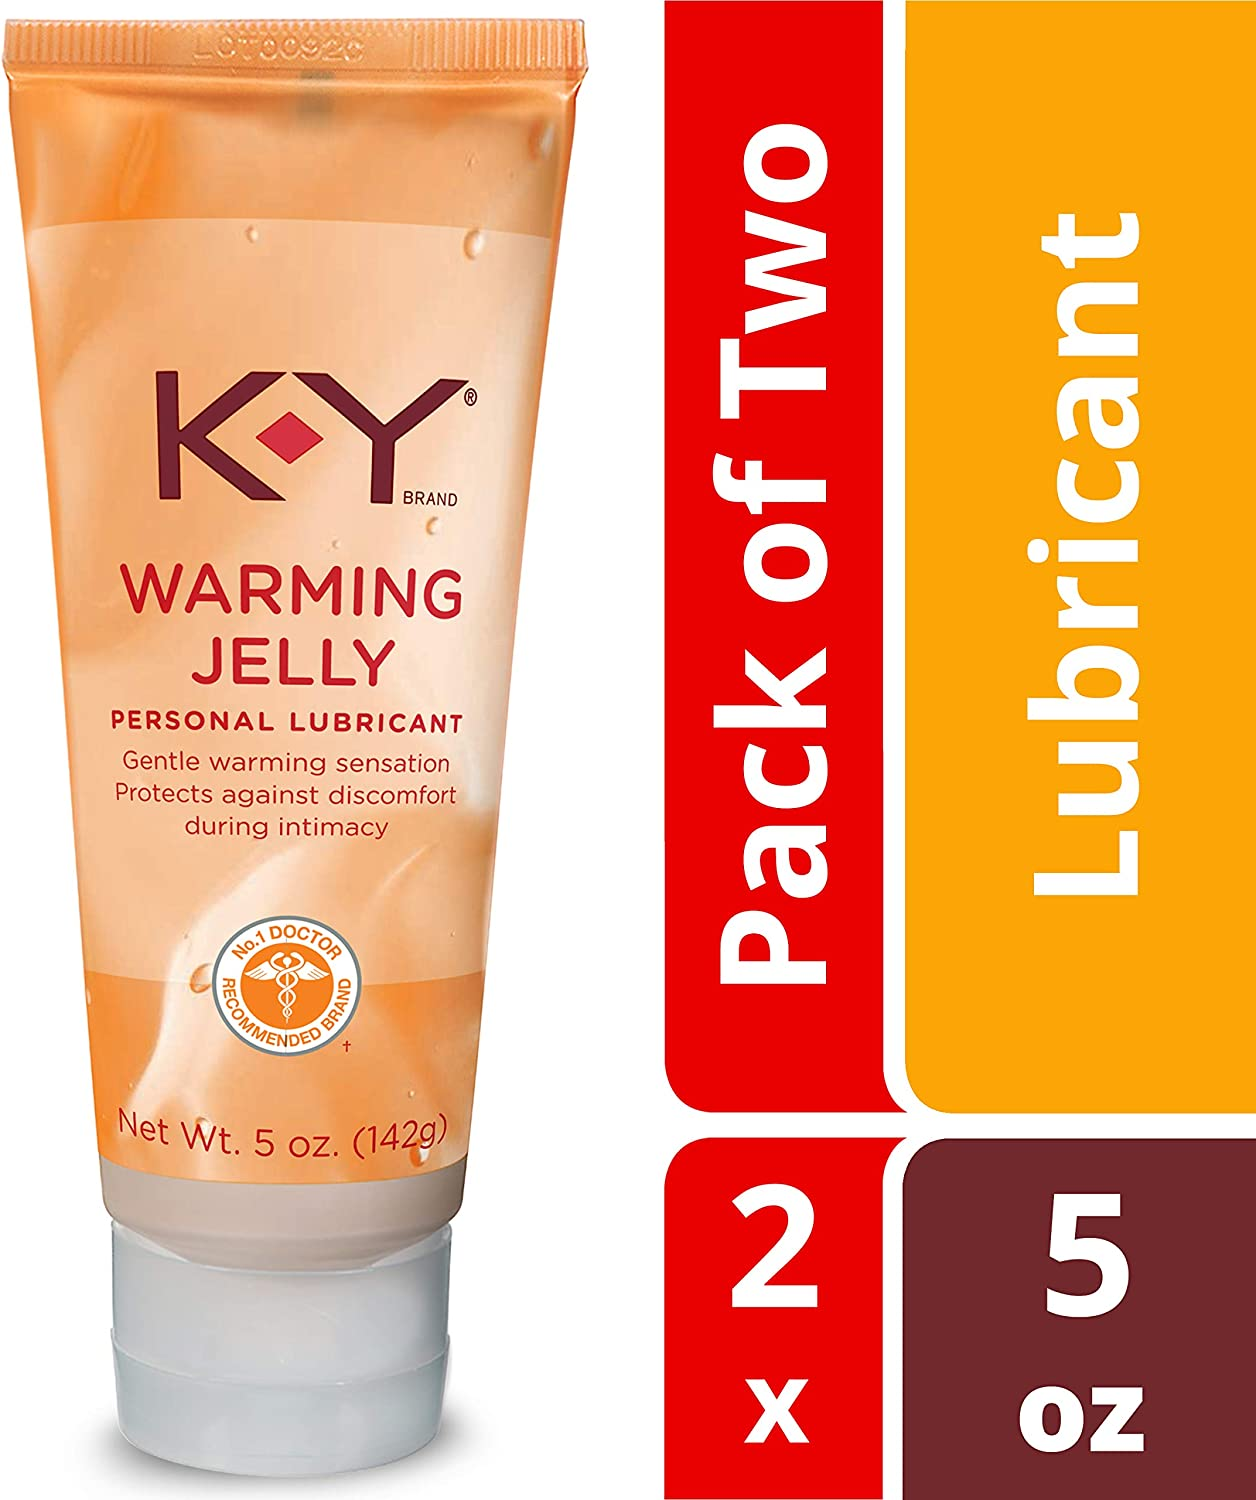 K-Y Warming Jelly Personal Lubricant (5 oz), Premium Non-Greasy Warming Lube for Women, Men & Couples (Pack of 2)